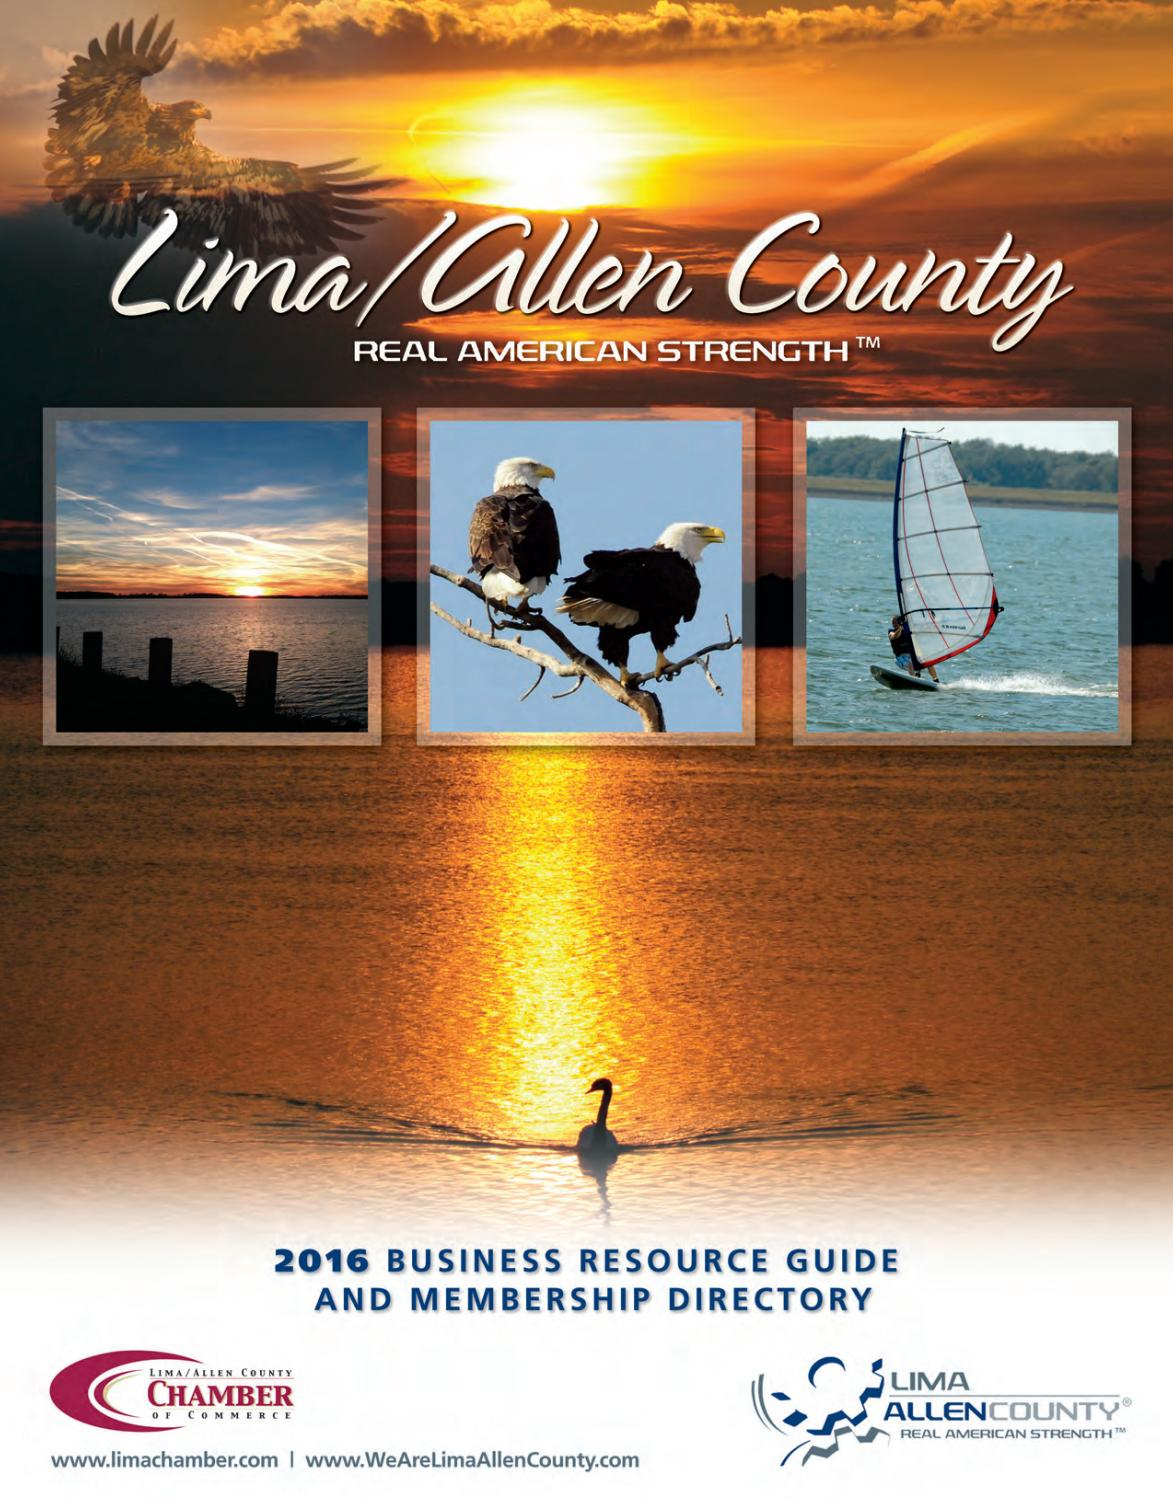 Lima Allen County Chamber Profile By Town Square Publications Llc Ttec4841 Electrical Corey Leonard April 2011 Issuu